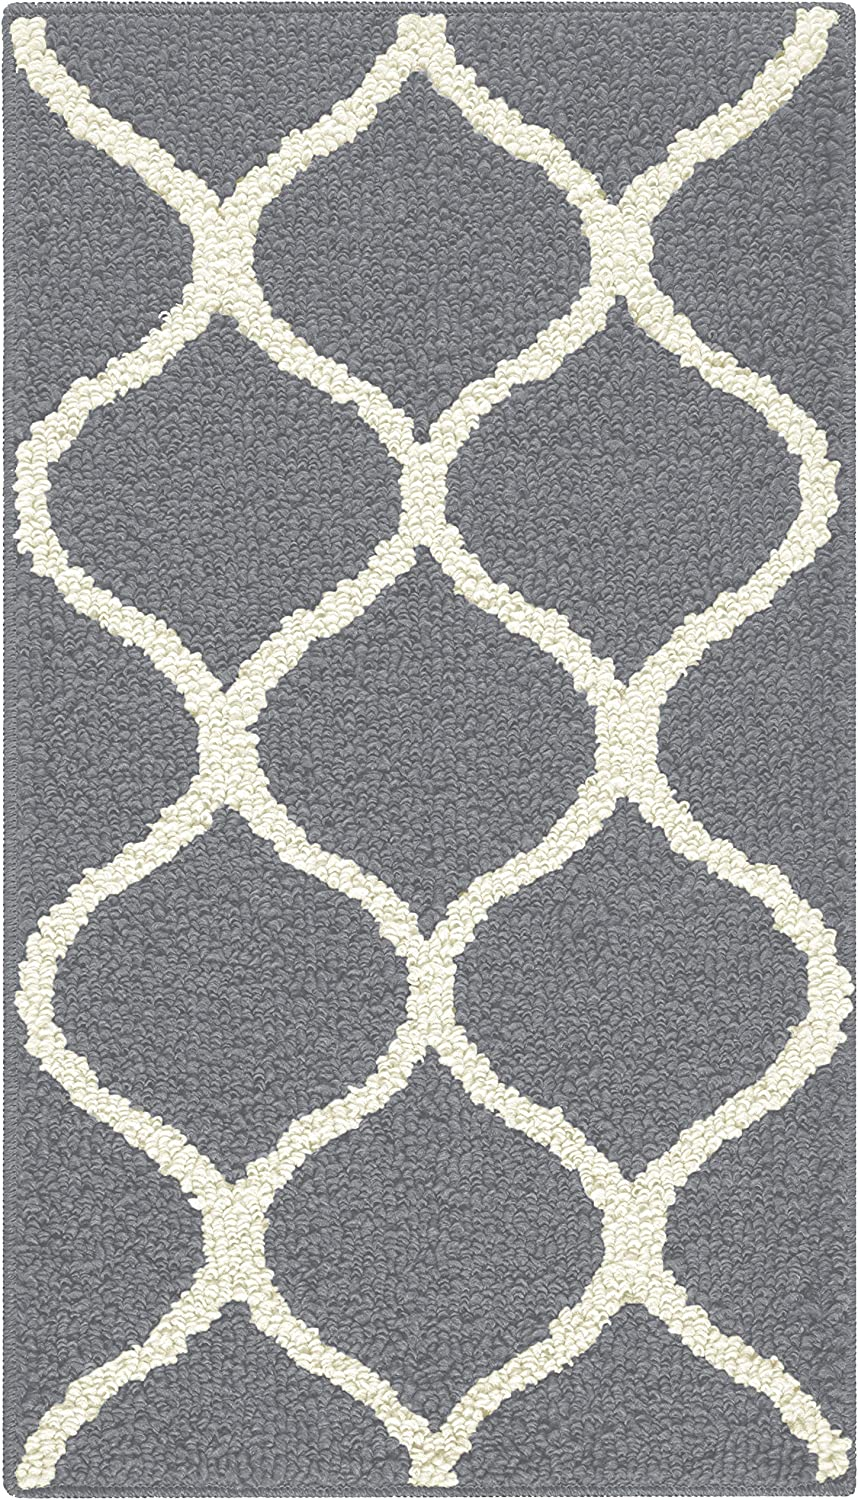 Maples Rugs Rebecca Contemporary Kitchen Rugs Non Skid Accent Area Carpet [Made in USA], 1'8 x 2'10, Grey/White: Furniture & Decor